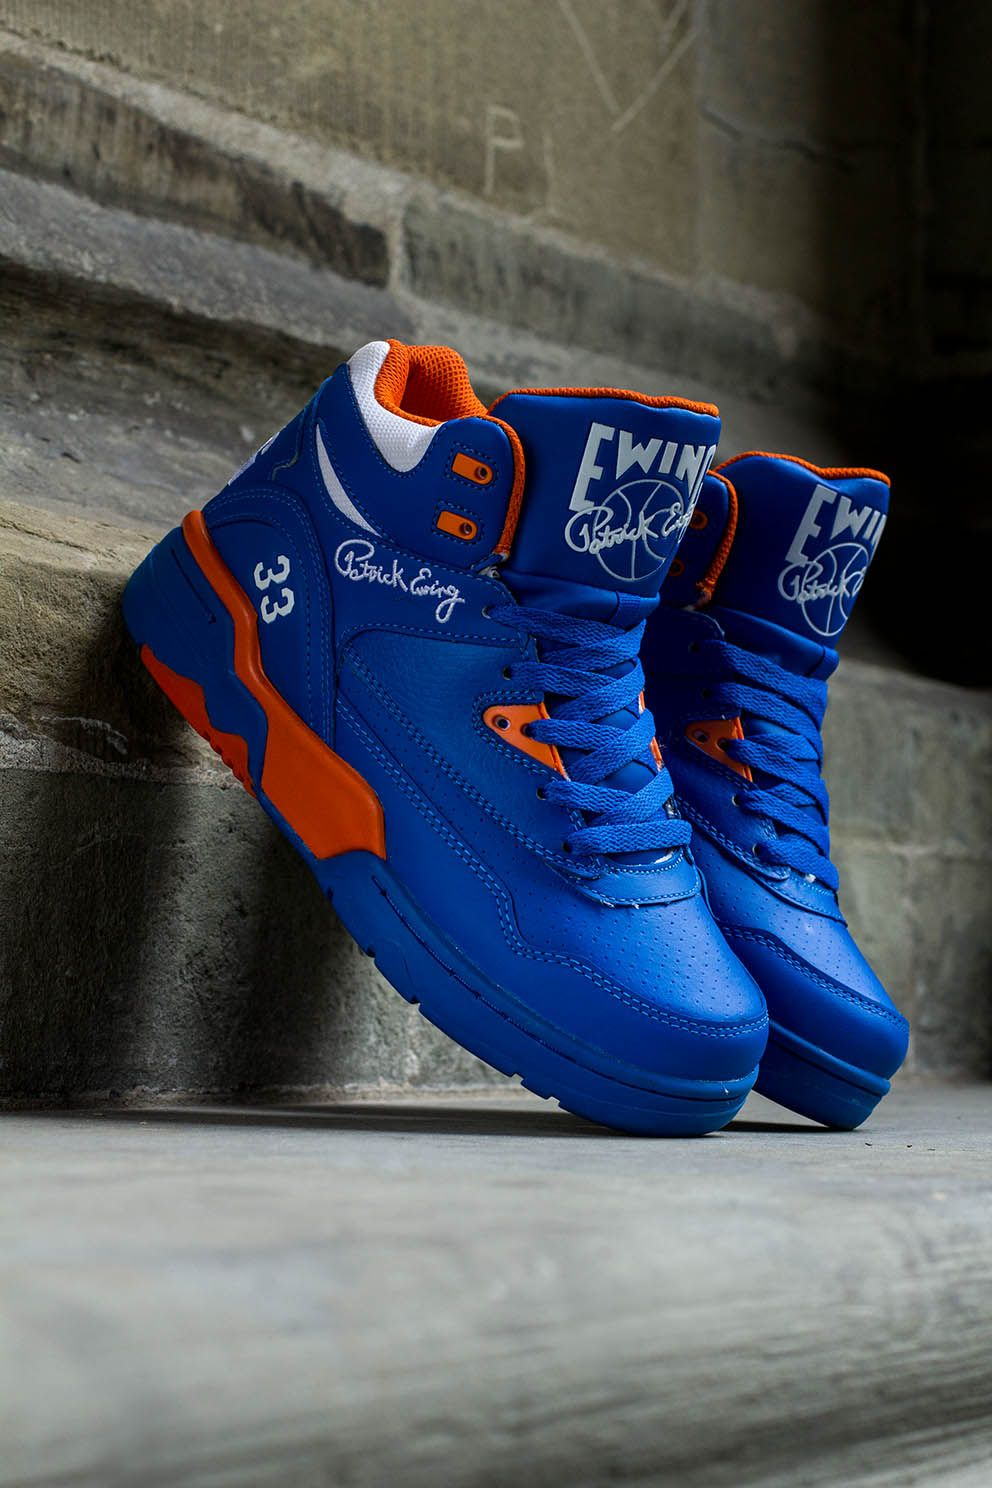 3128e63985d847 Ewing Athletics Guard New York Knicks..... I WANT THESE TOO